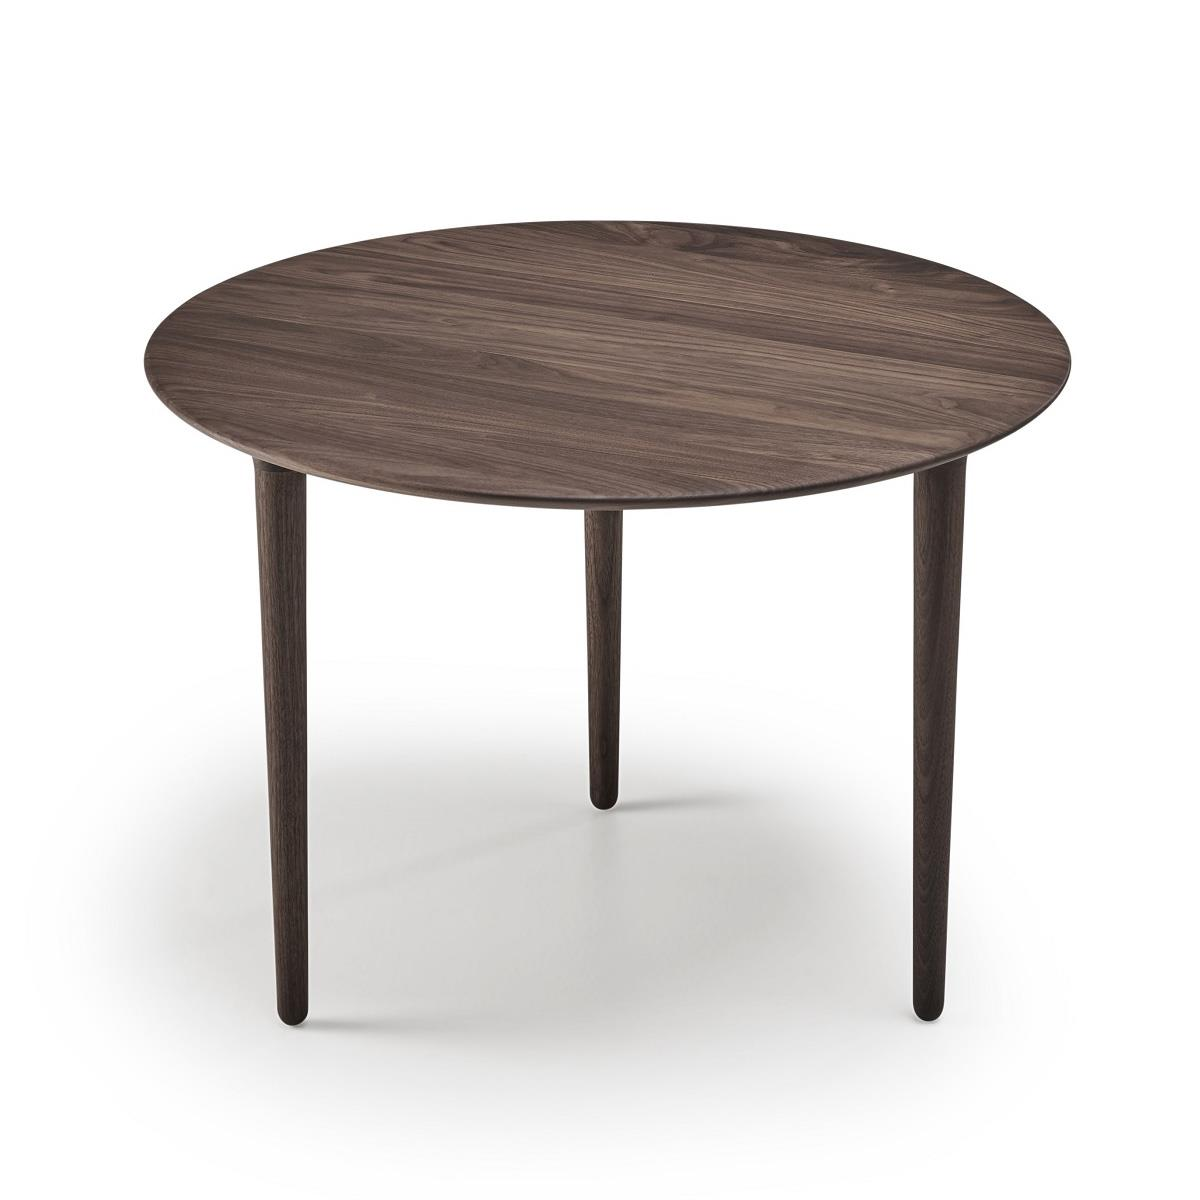 Evja Coffee Table. Valnøtt oljet. Ø85cm. H45cm.